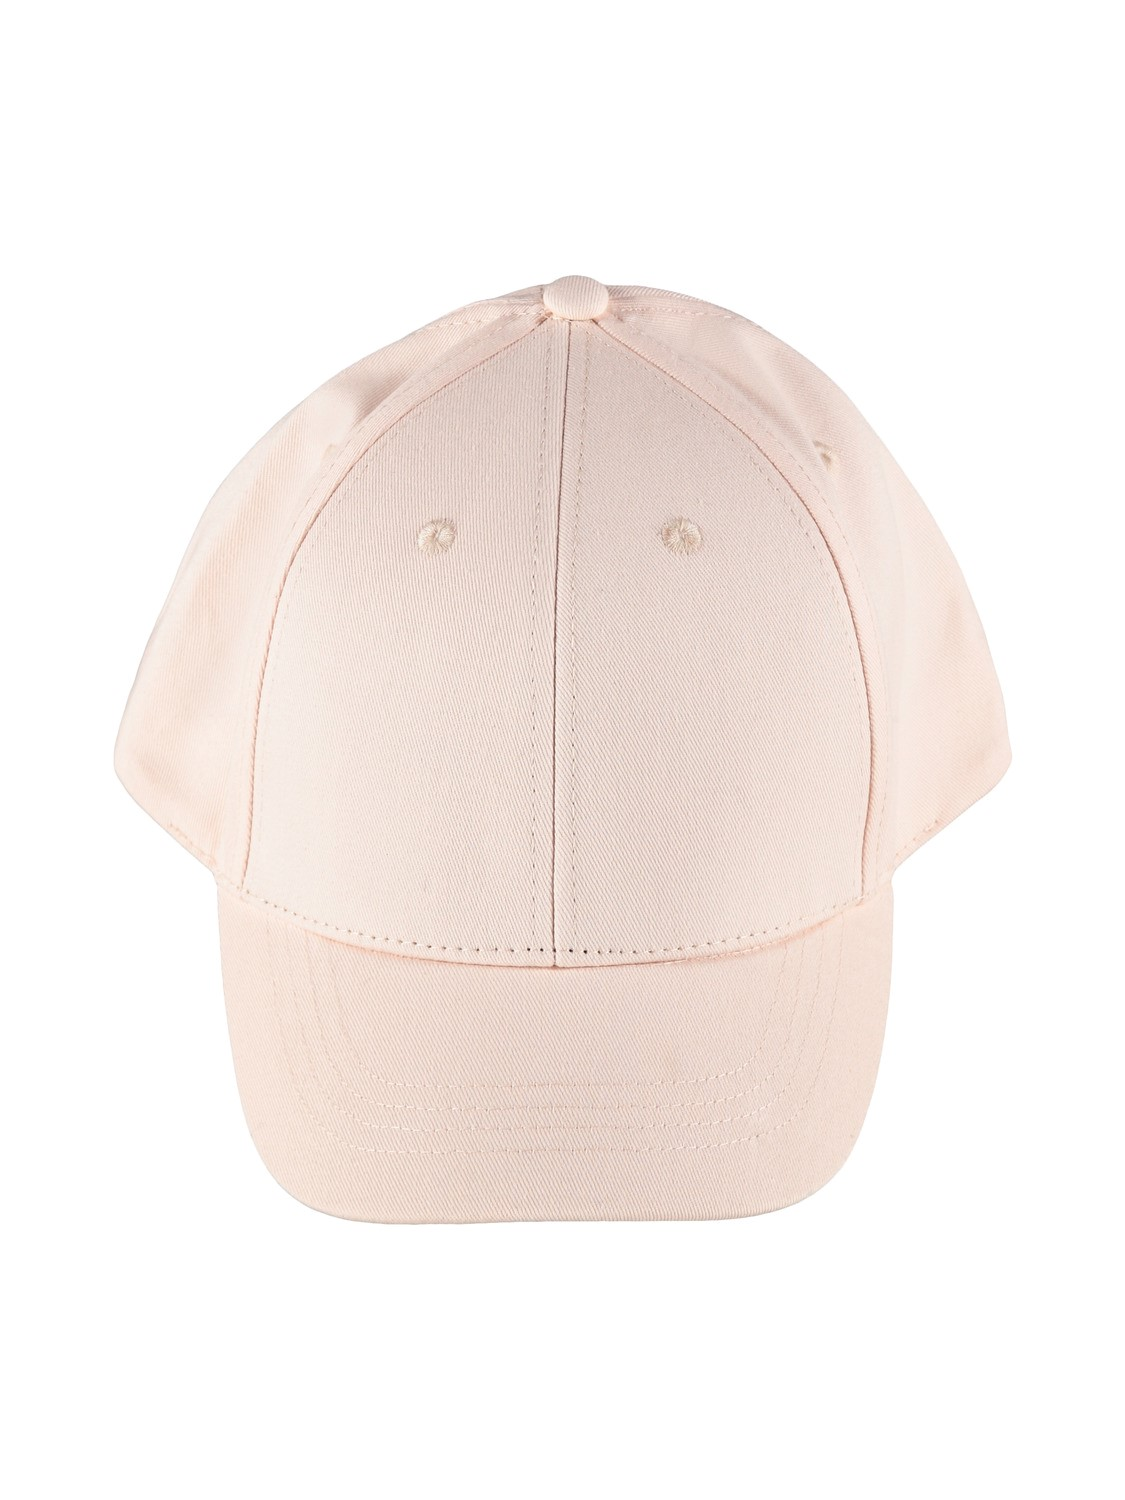 Fimen Cap Kids - Peach Whip